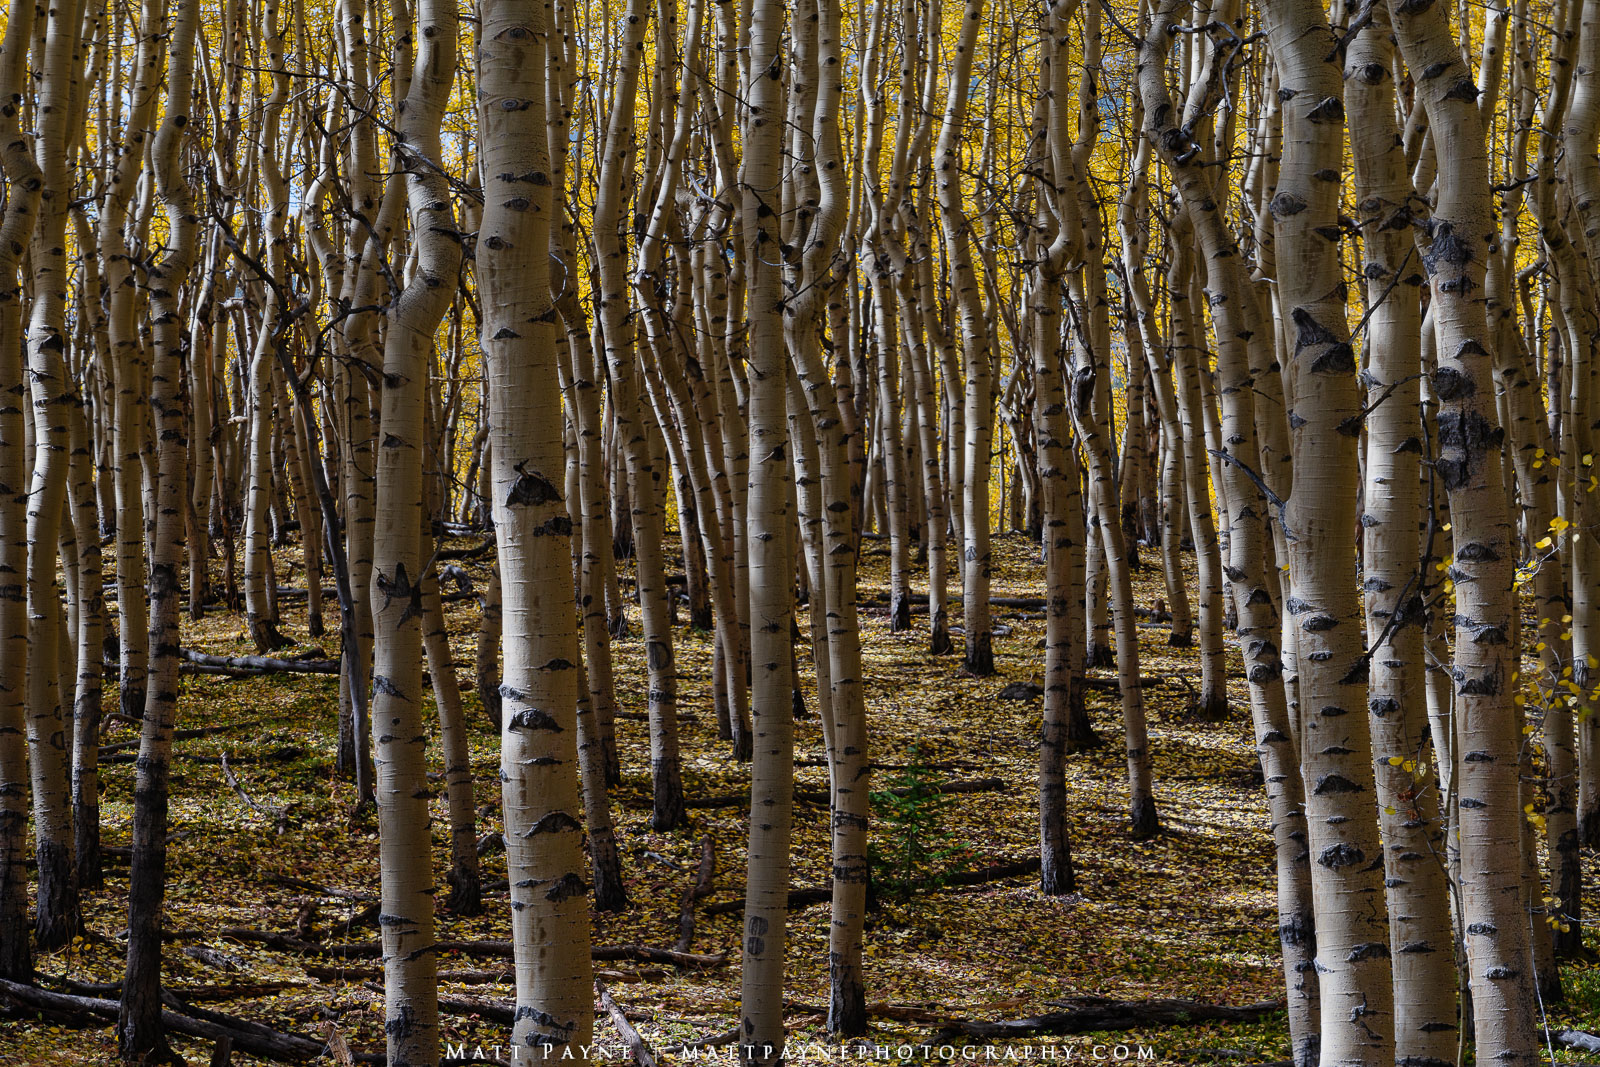 """One of the coolest and creepiest things about wandering through a forest filled with aspen trees in autumn is all of the """"eyes..."""